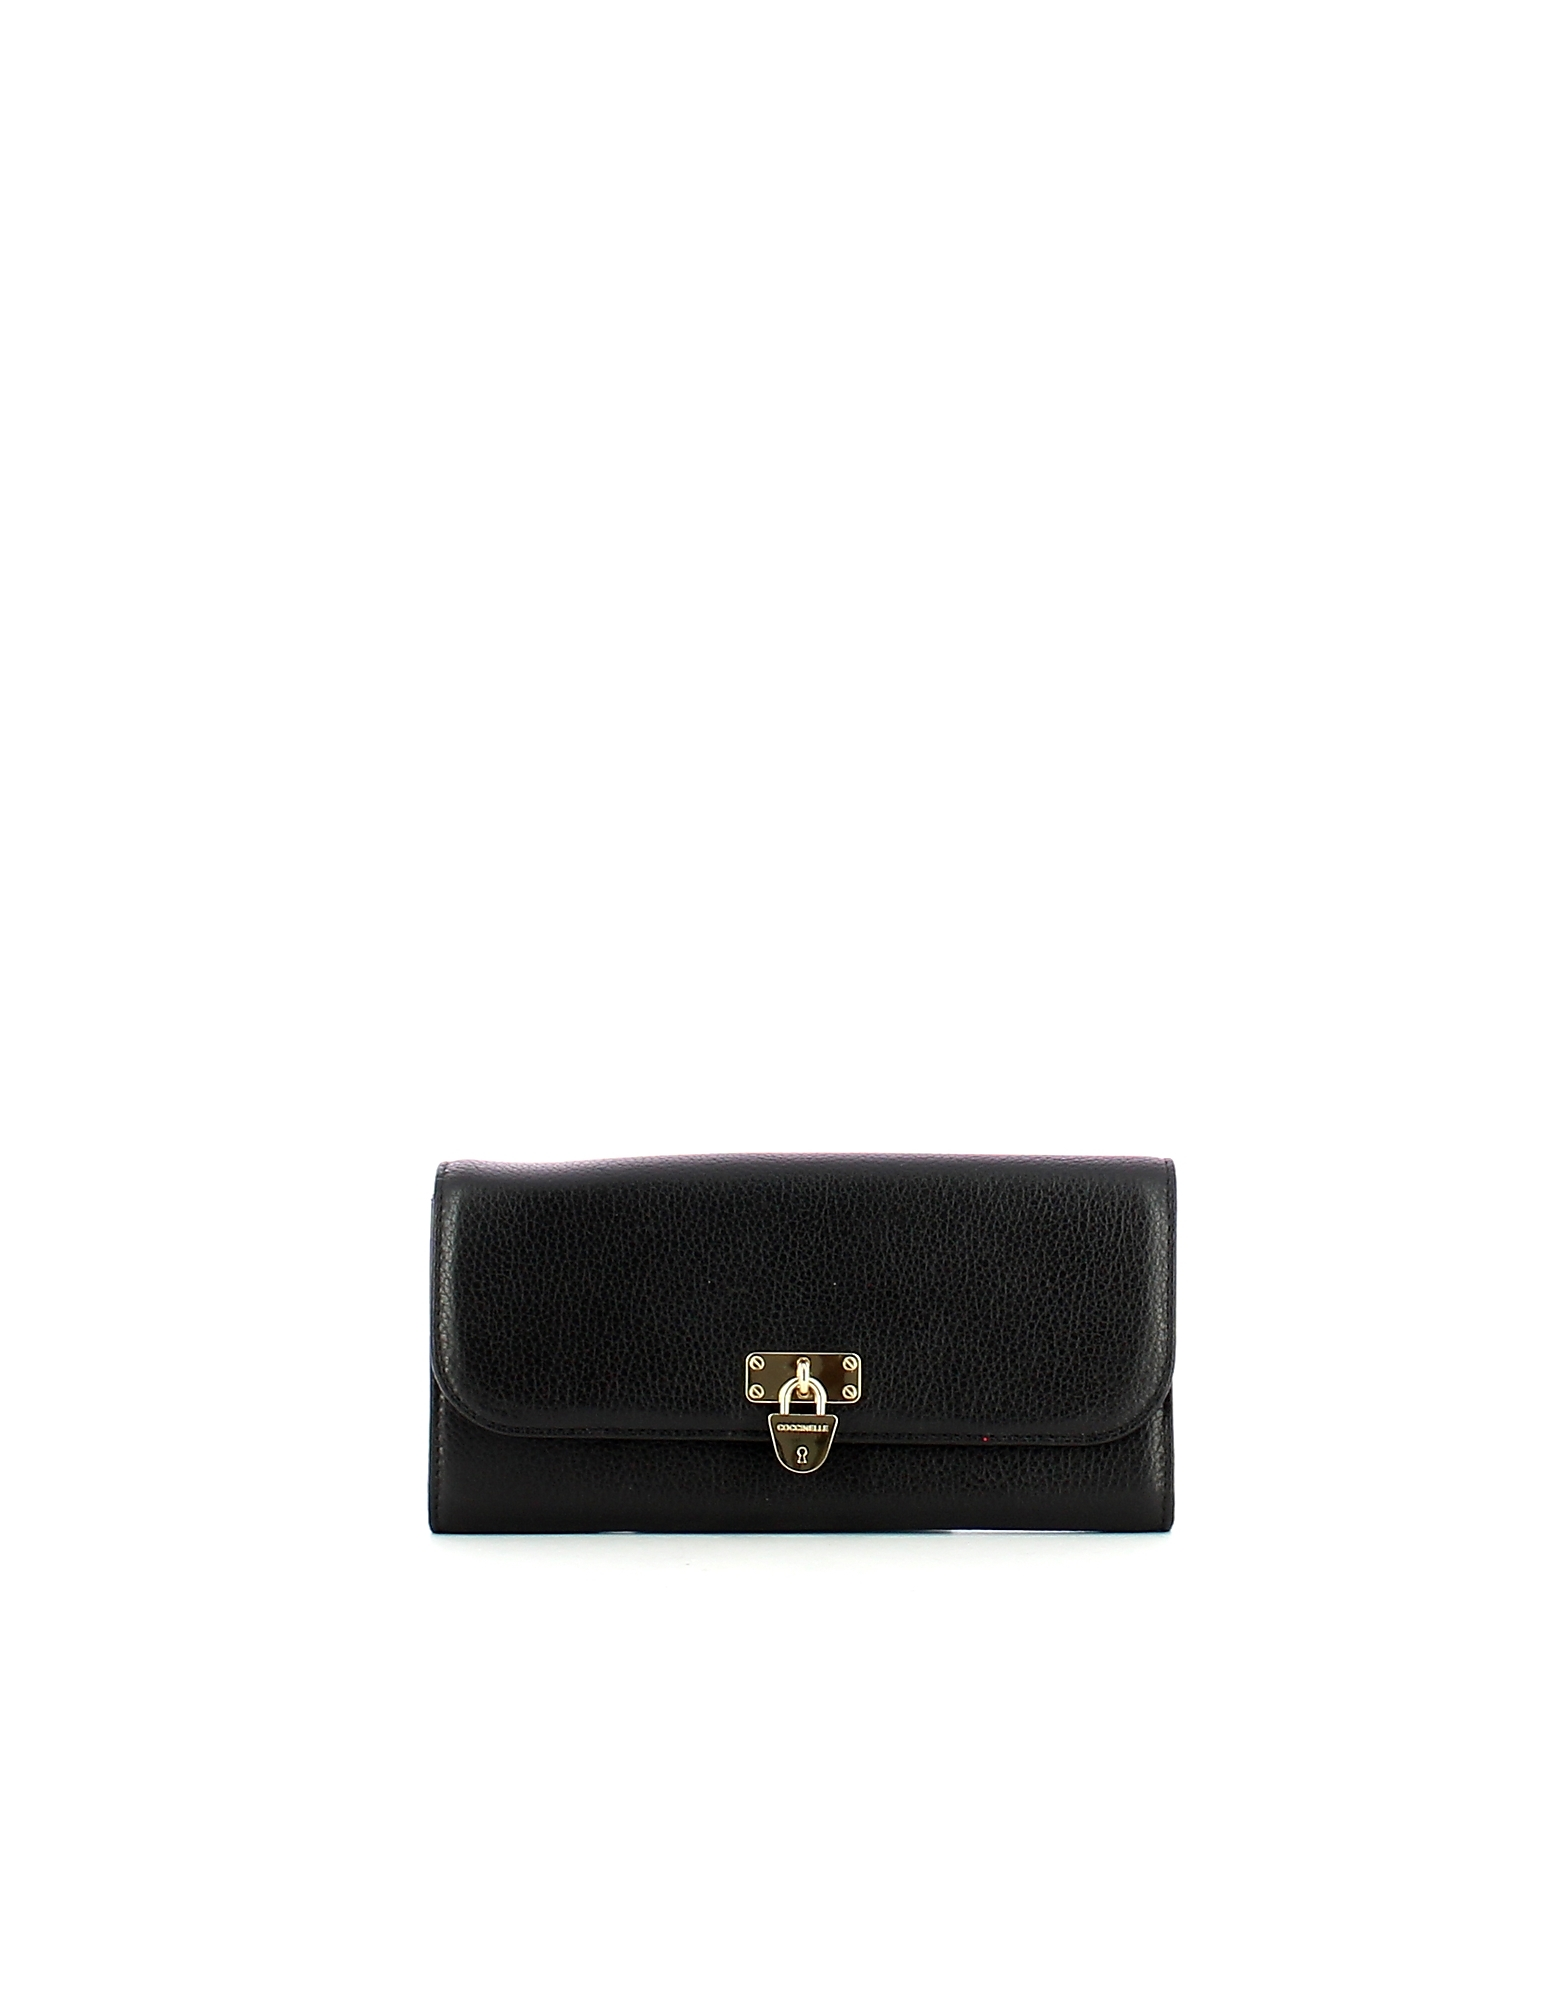 Coccinelle Designer Wallets, Women's Black Wallet